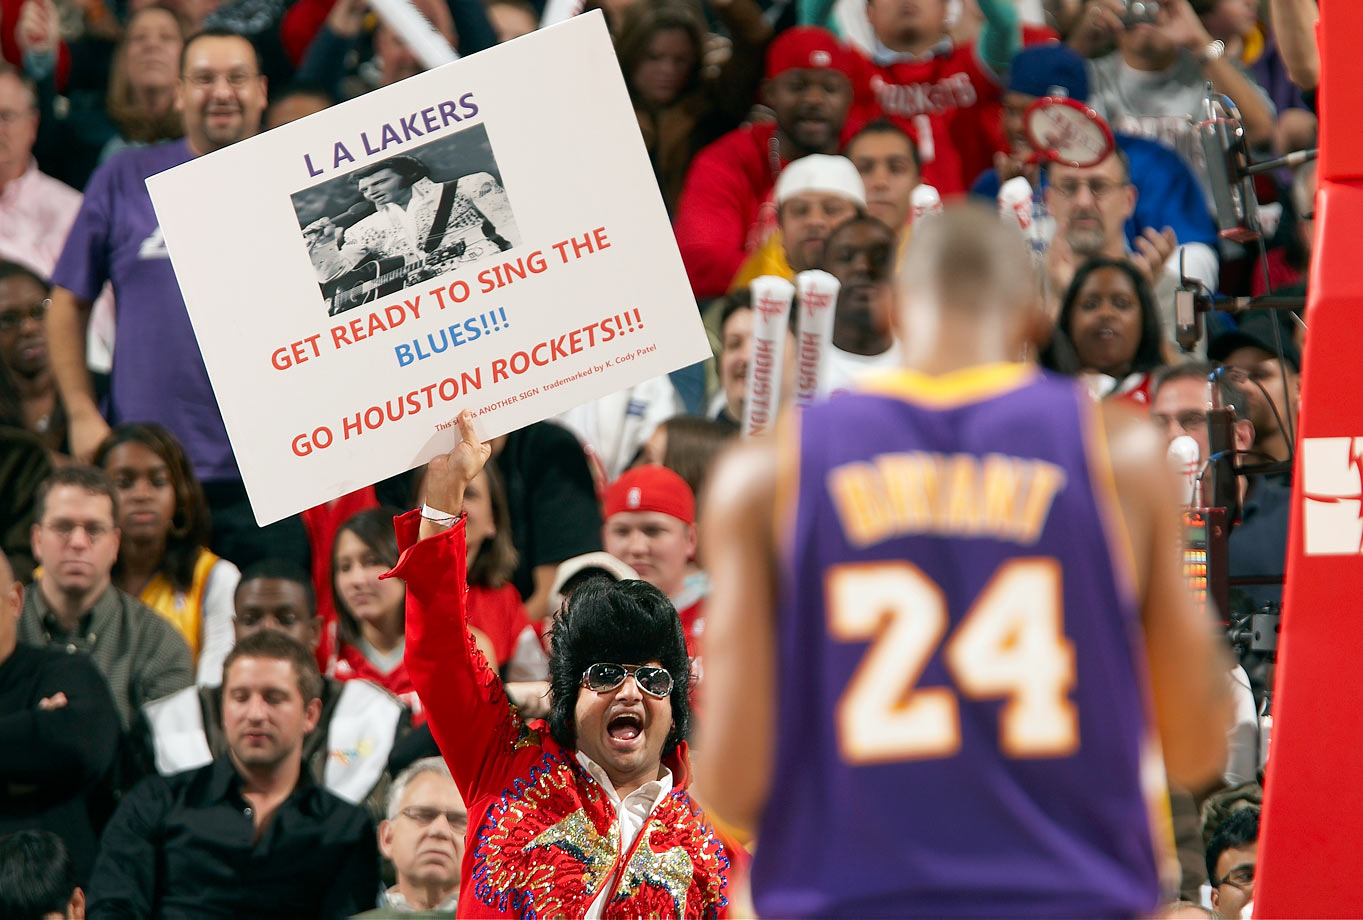 A Rockets and Elvis fan tries to distract Kobe Bryant during the Houston Rockets game against the Los Angeles Lakers at Toyota Center in Houston on Jan. 13, 2009.